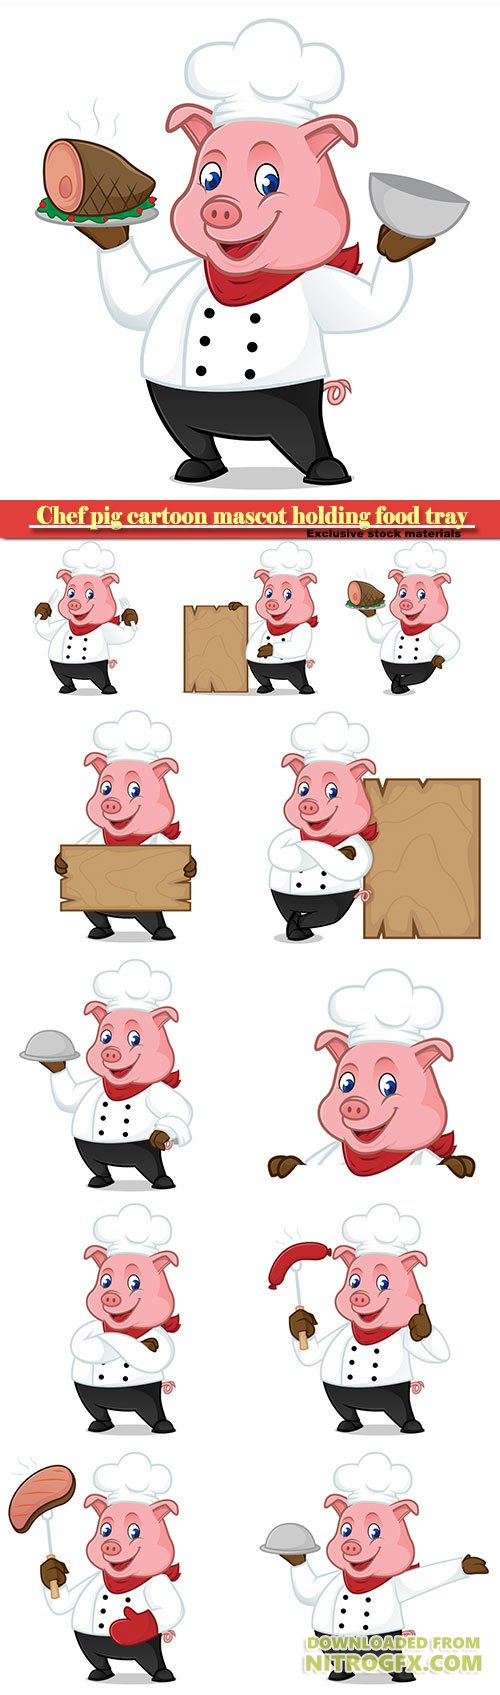 Chef pig cartoon mascot holding food tray